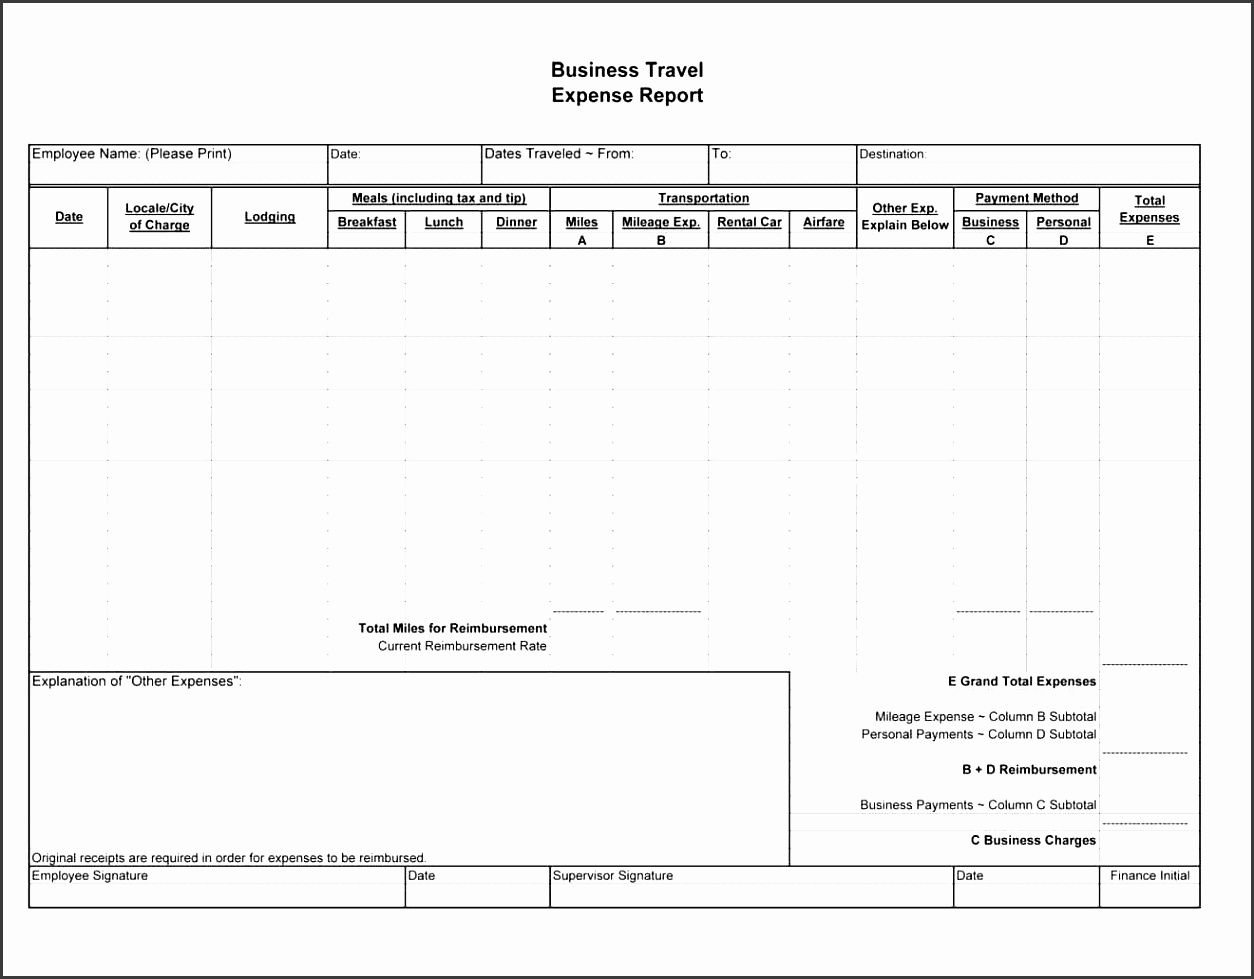 image for business trip expense report template